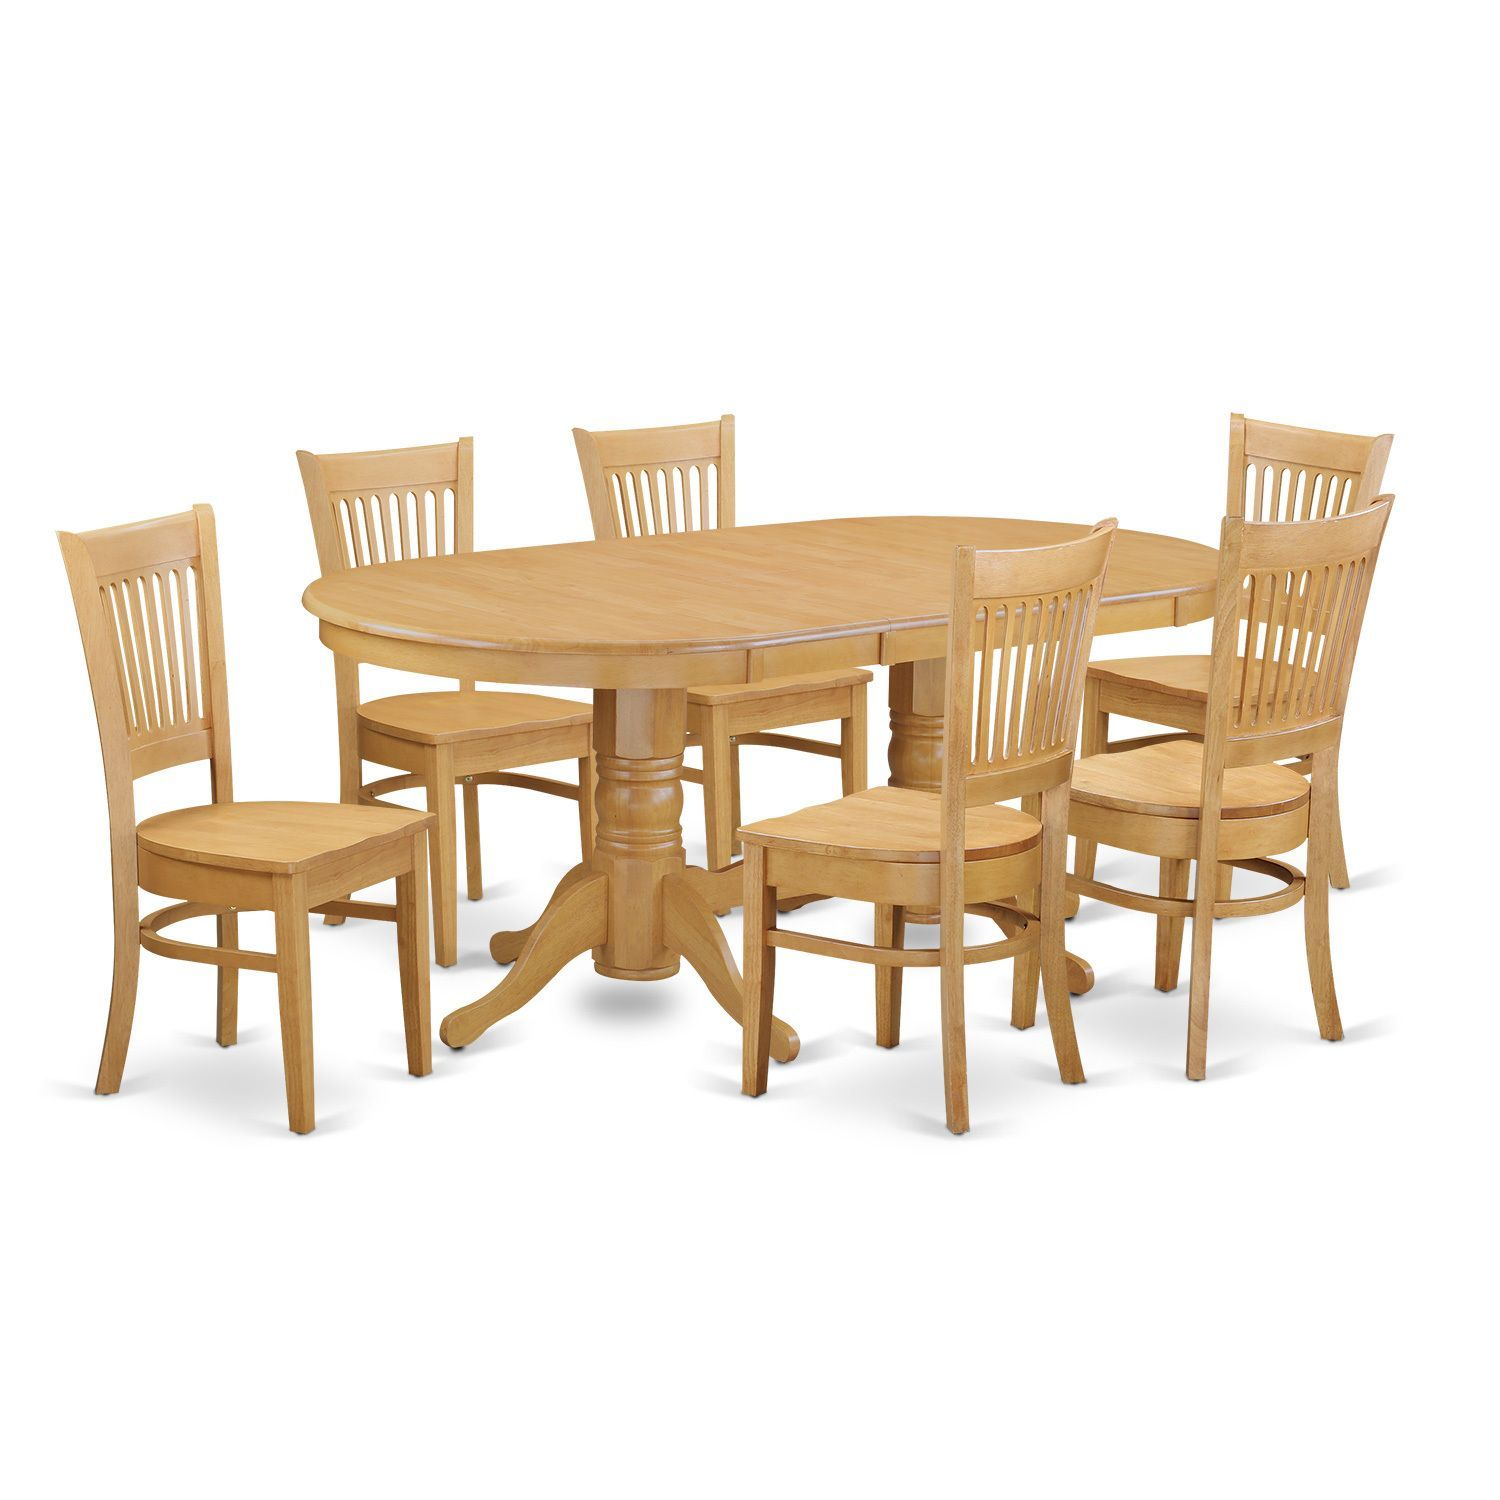 Oak finish rubberwood dining table with leaf and 6 chairs wood seat beige size 7 piece sets